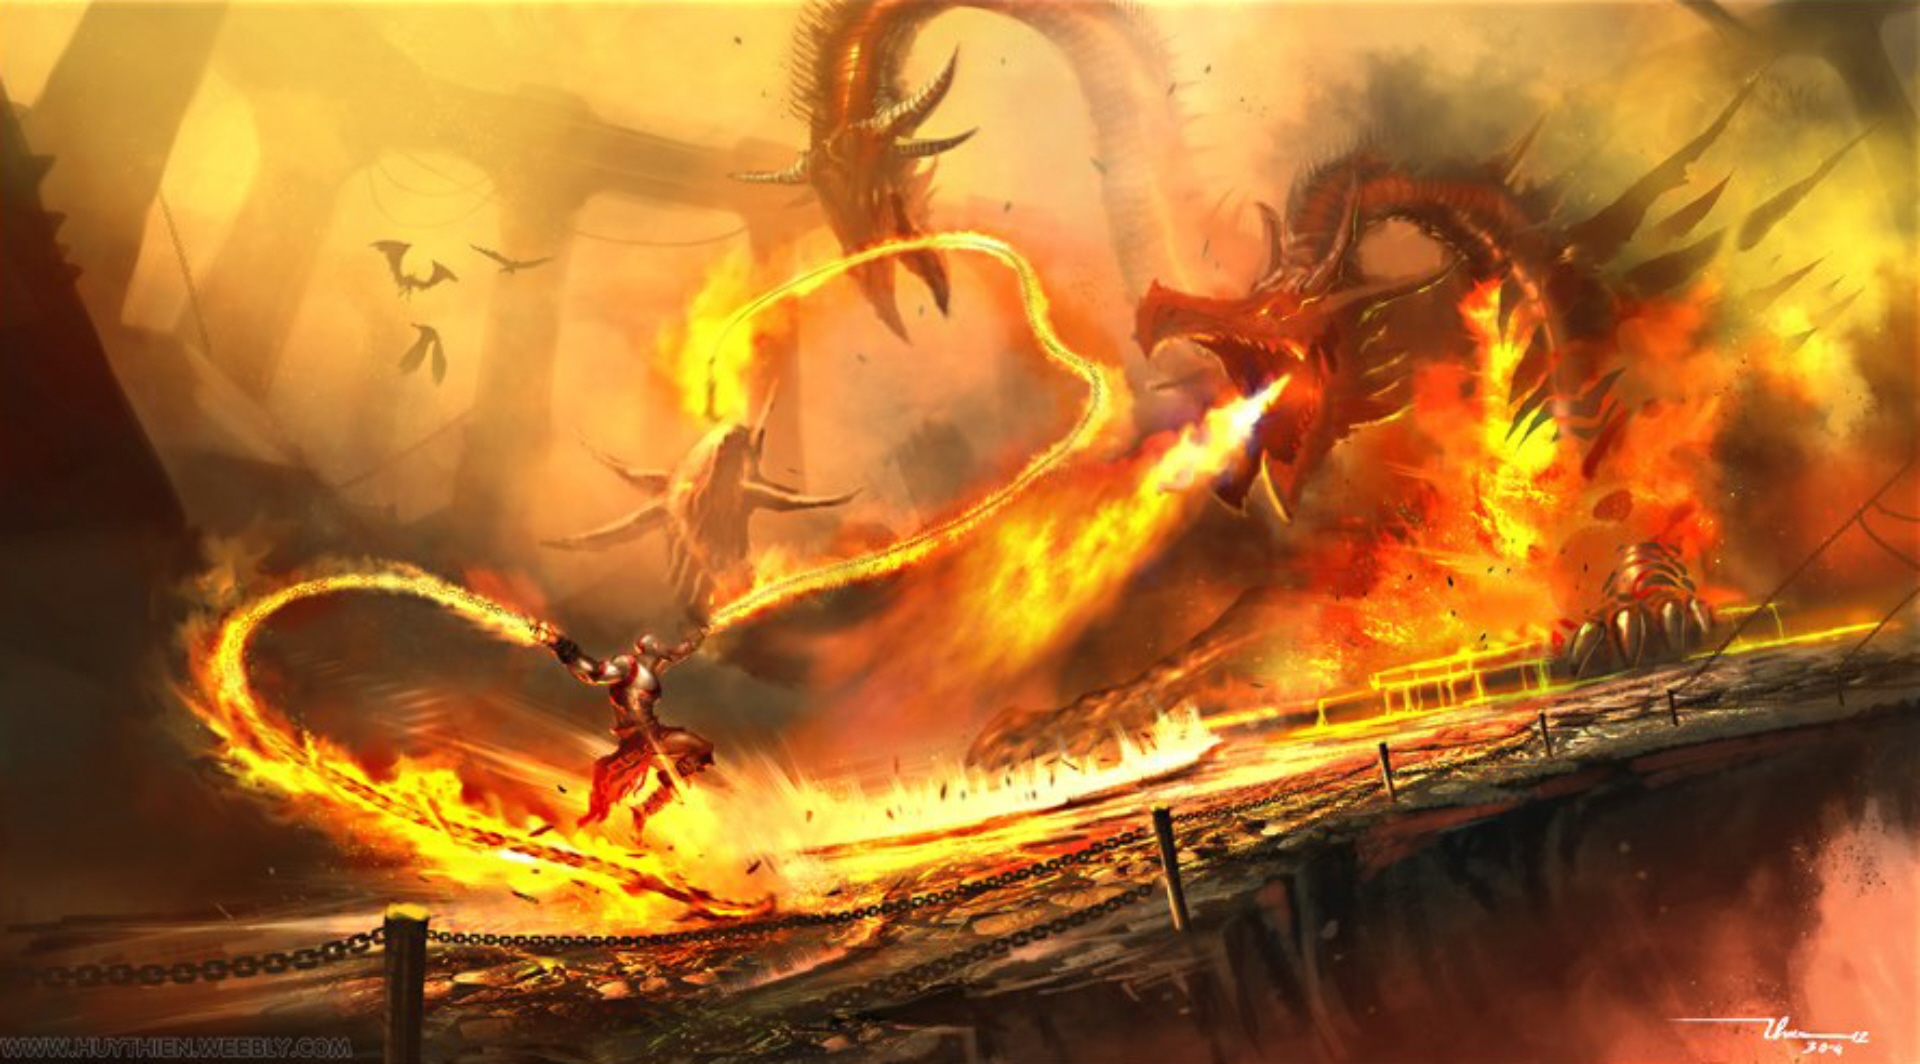 Epic God Of War Dragon Wallpaper By Thiennh2